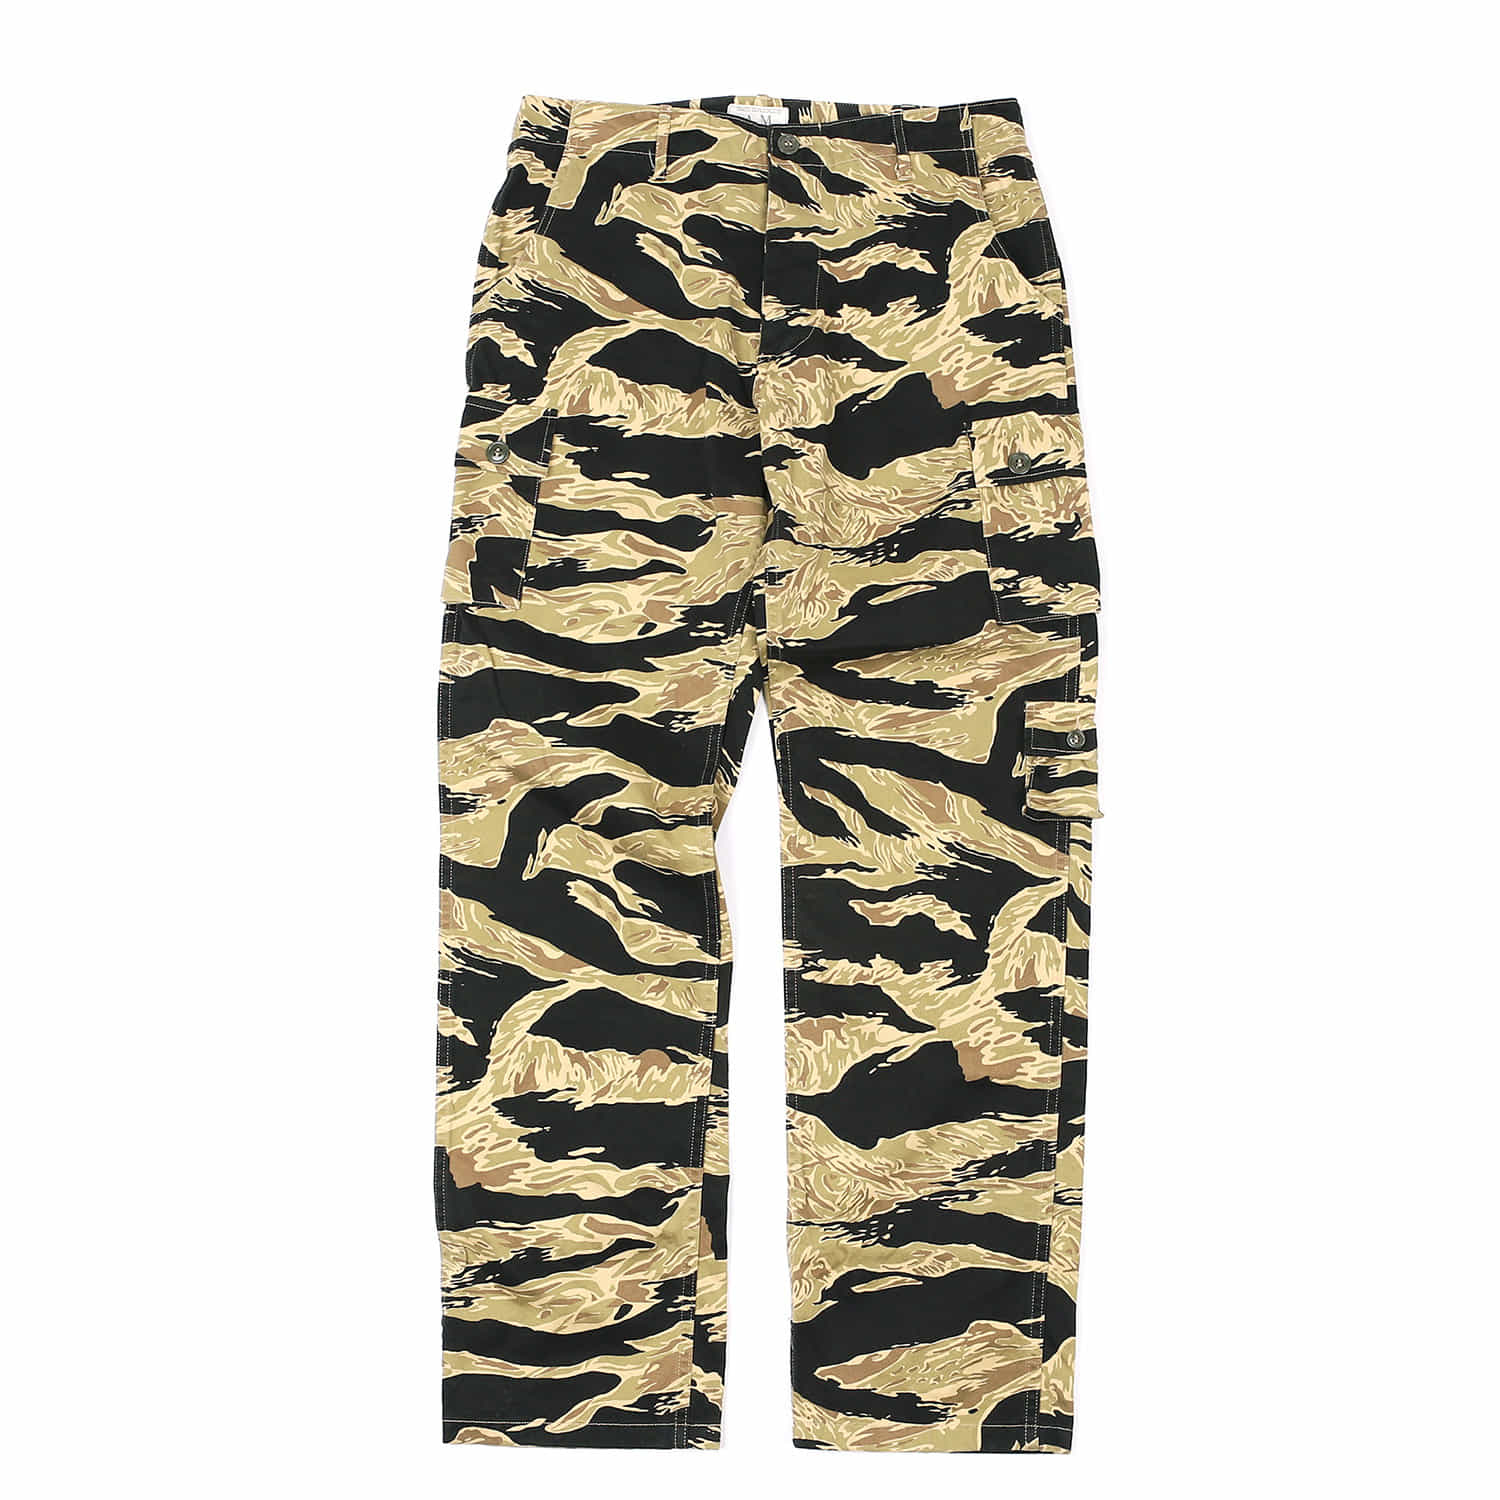 U.S. ARMY GOLD TIGER PATTERN TROUSERS